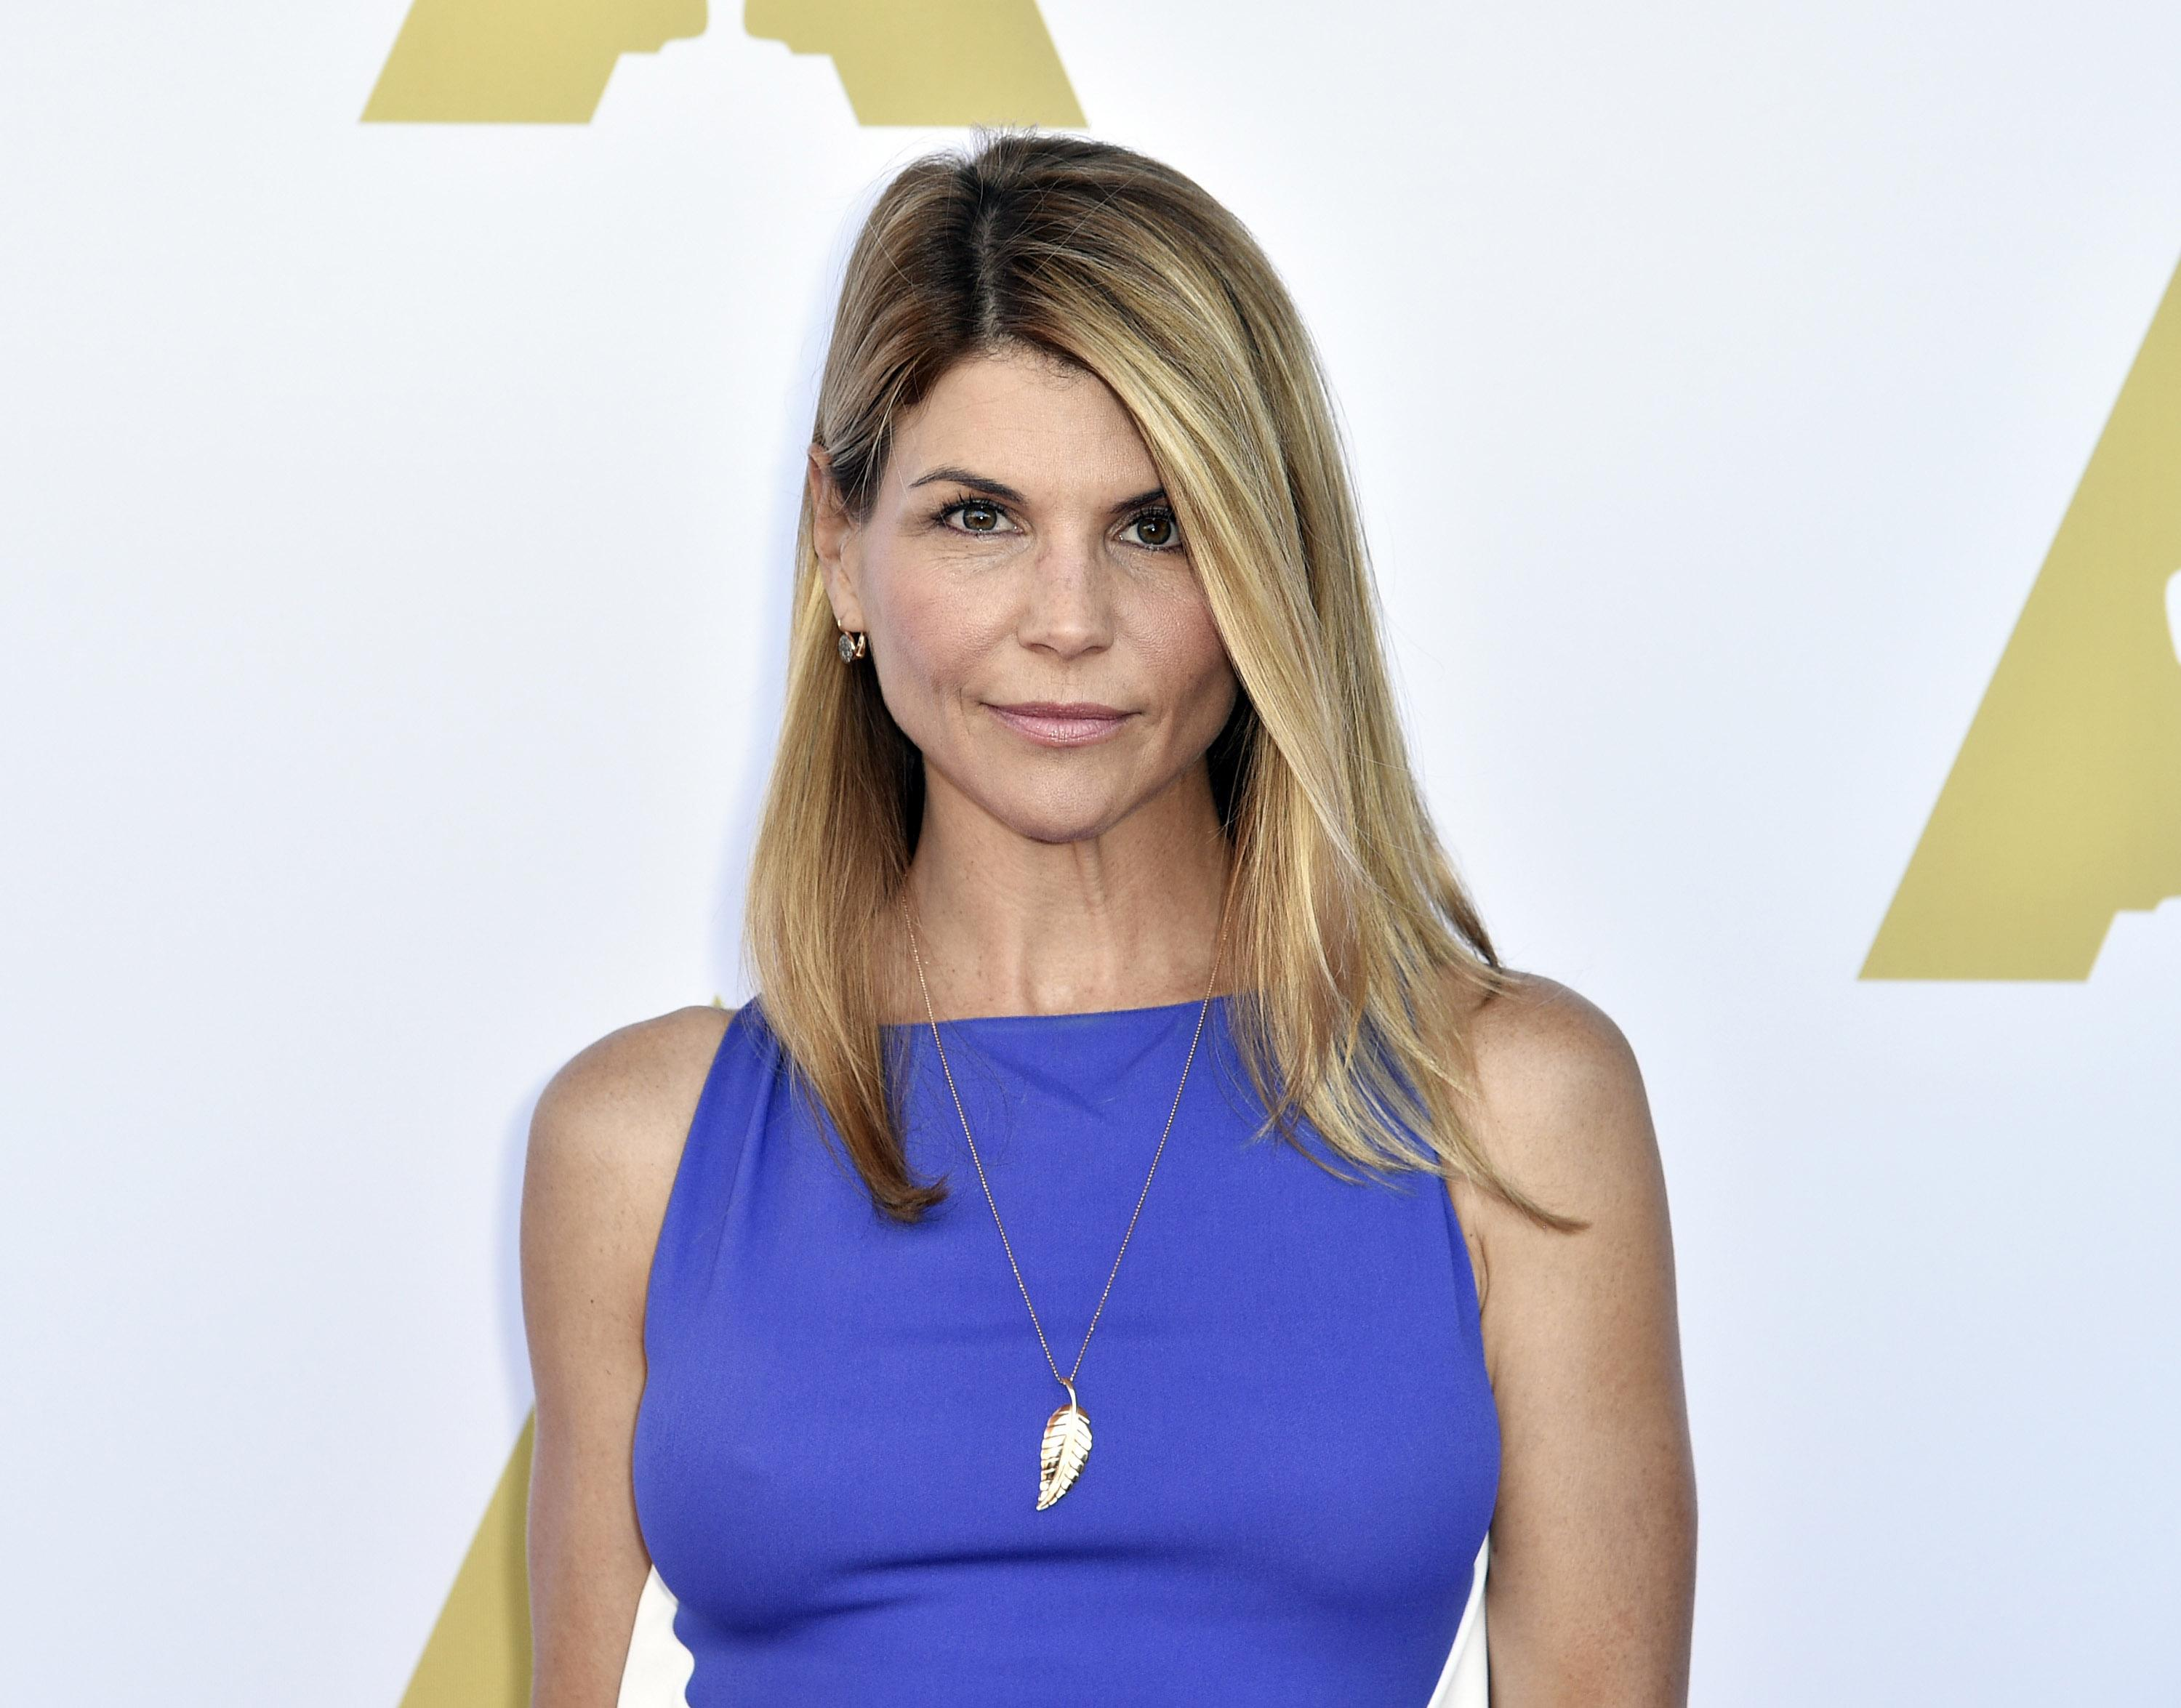 Lori Loughlin's Jail Sentence Is A 'Nightmare' For Her Daughters | Q 101.9